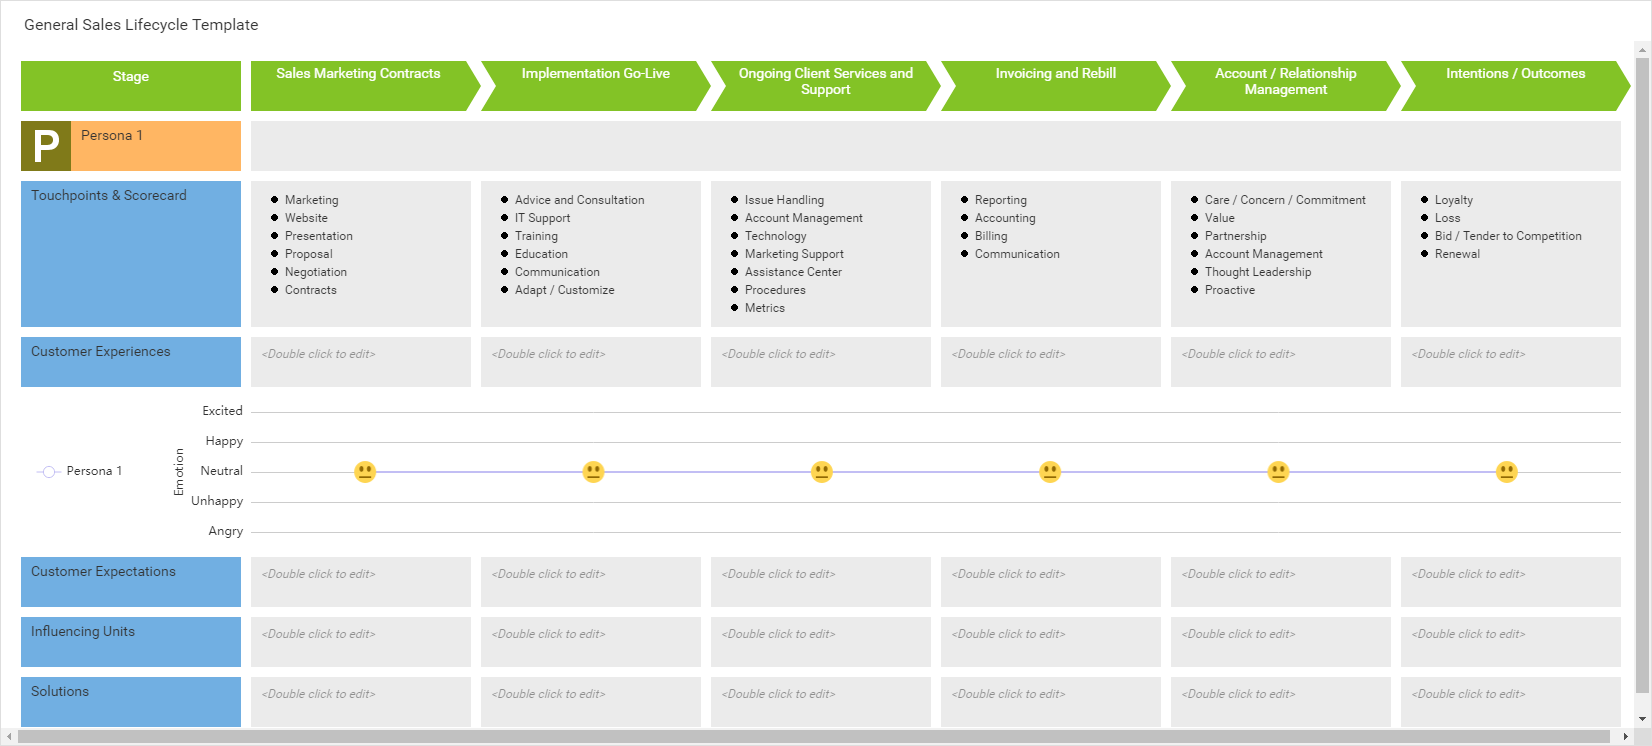 General Sales Lifecycle Template (Customer Journey Mapping Example)